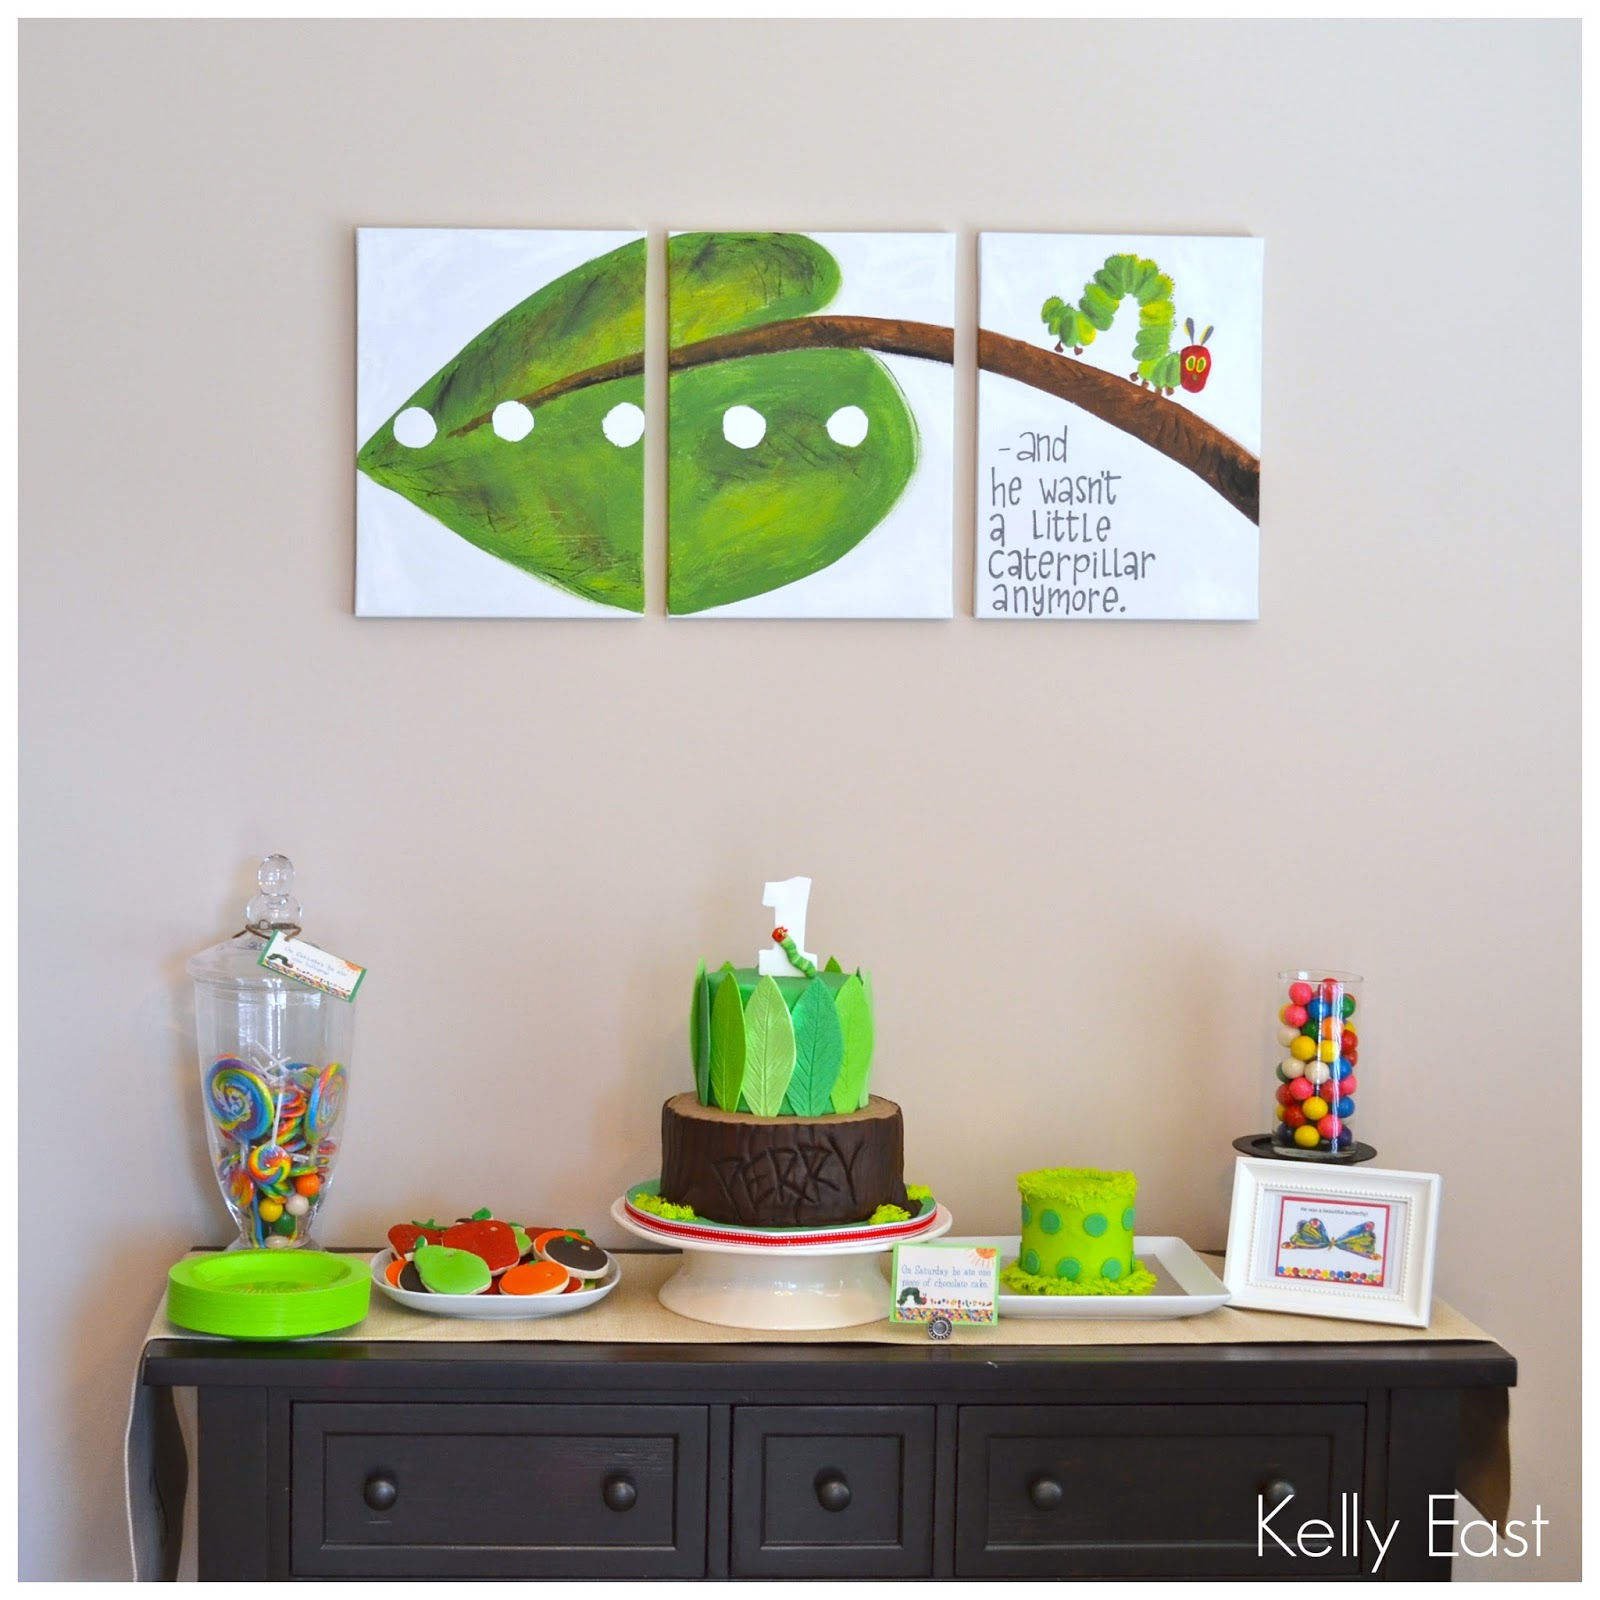 The Previous Birthday Post Was More About Birthday Party Itself. Now I Am  Going To Take A Moment Or Two To Talk More About All The Little Caterpillar Y  ... Part 66